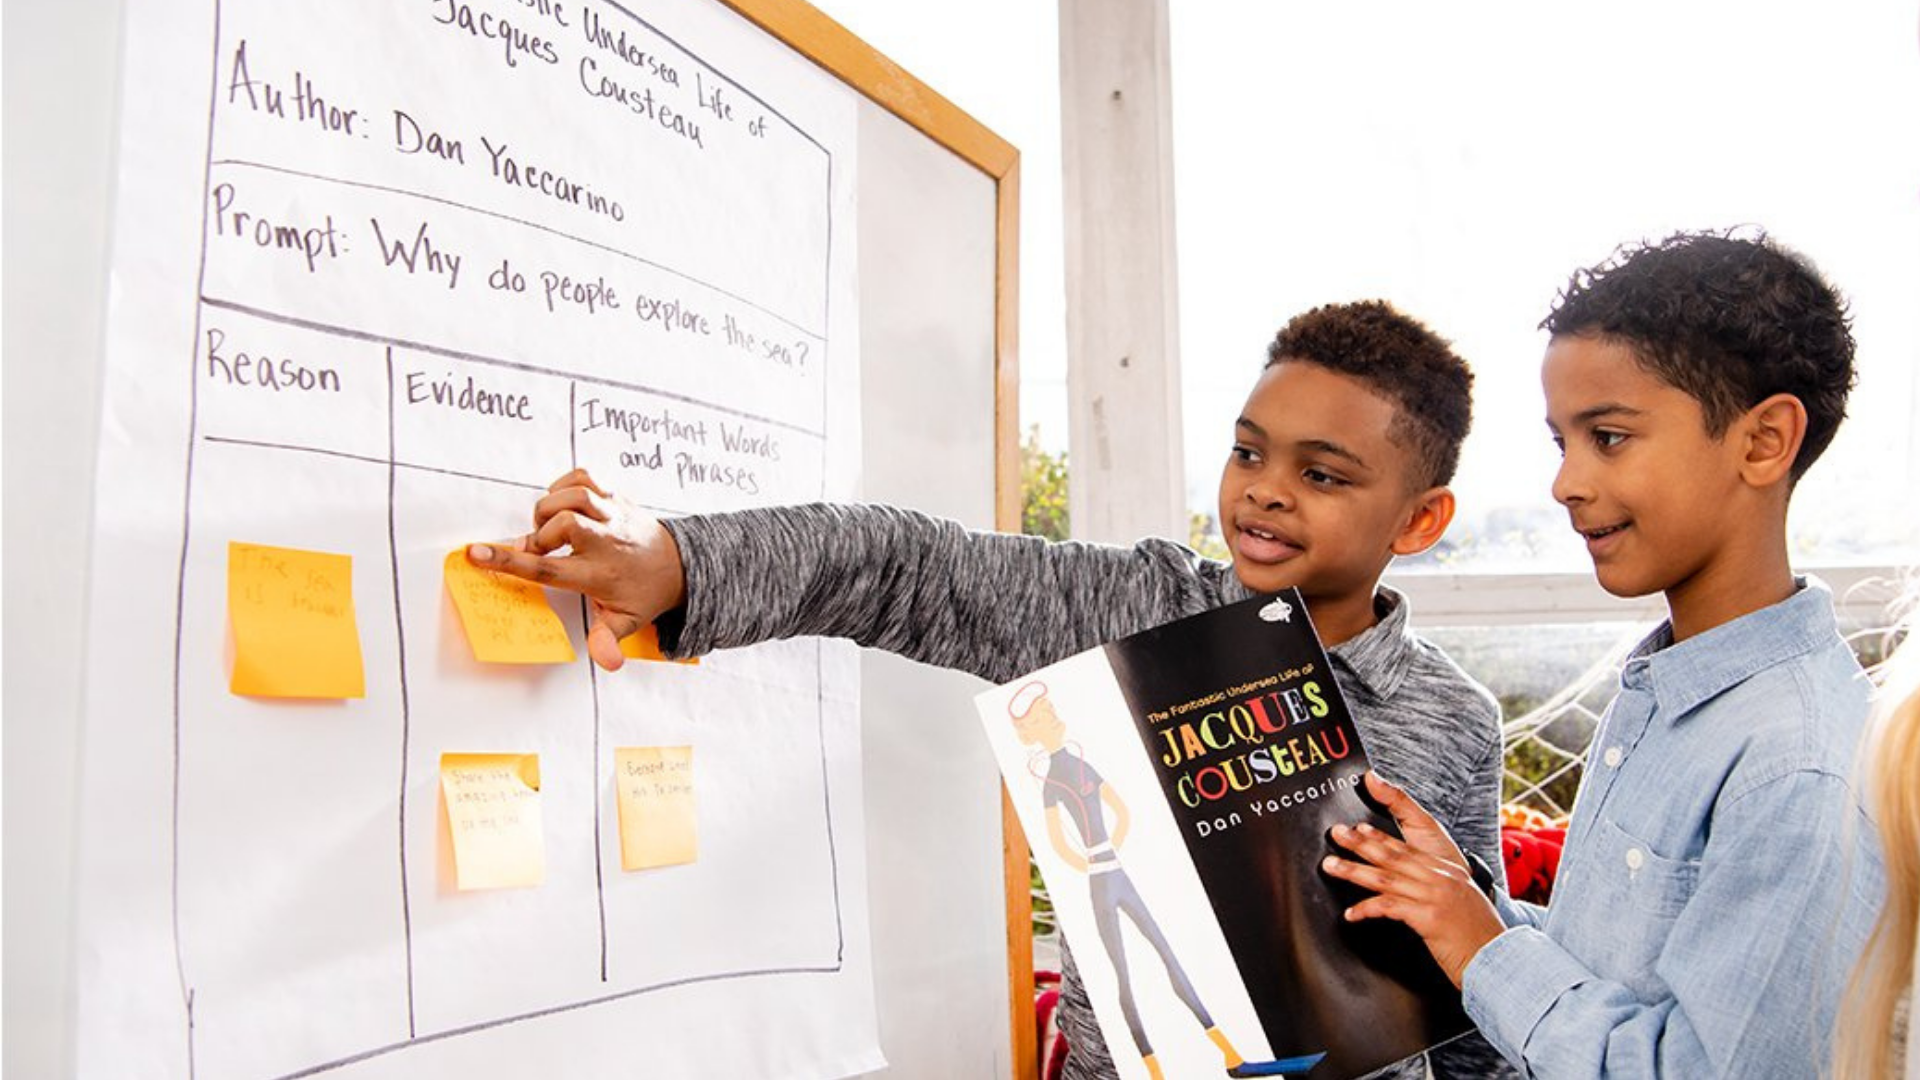 Solidifying Academic VocabularyThrough Complex Texts and Hands-On Experiences